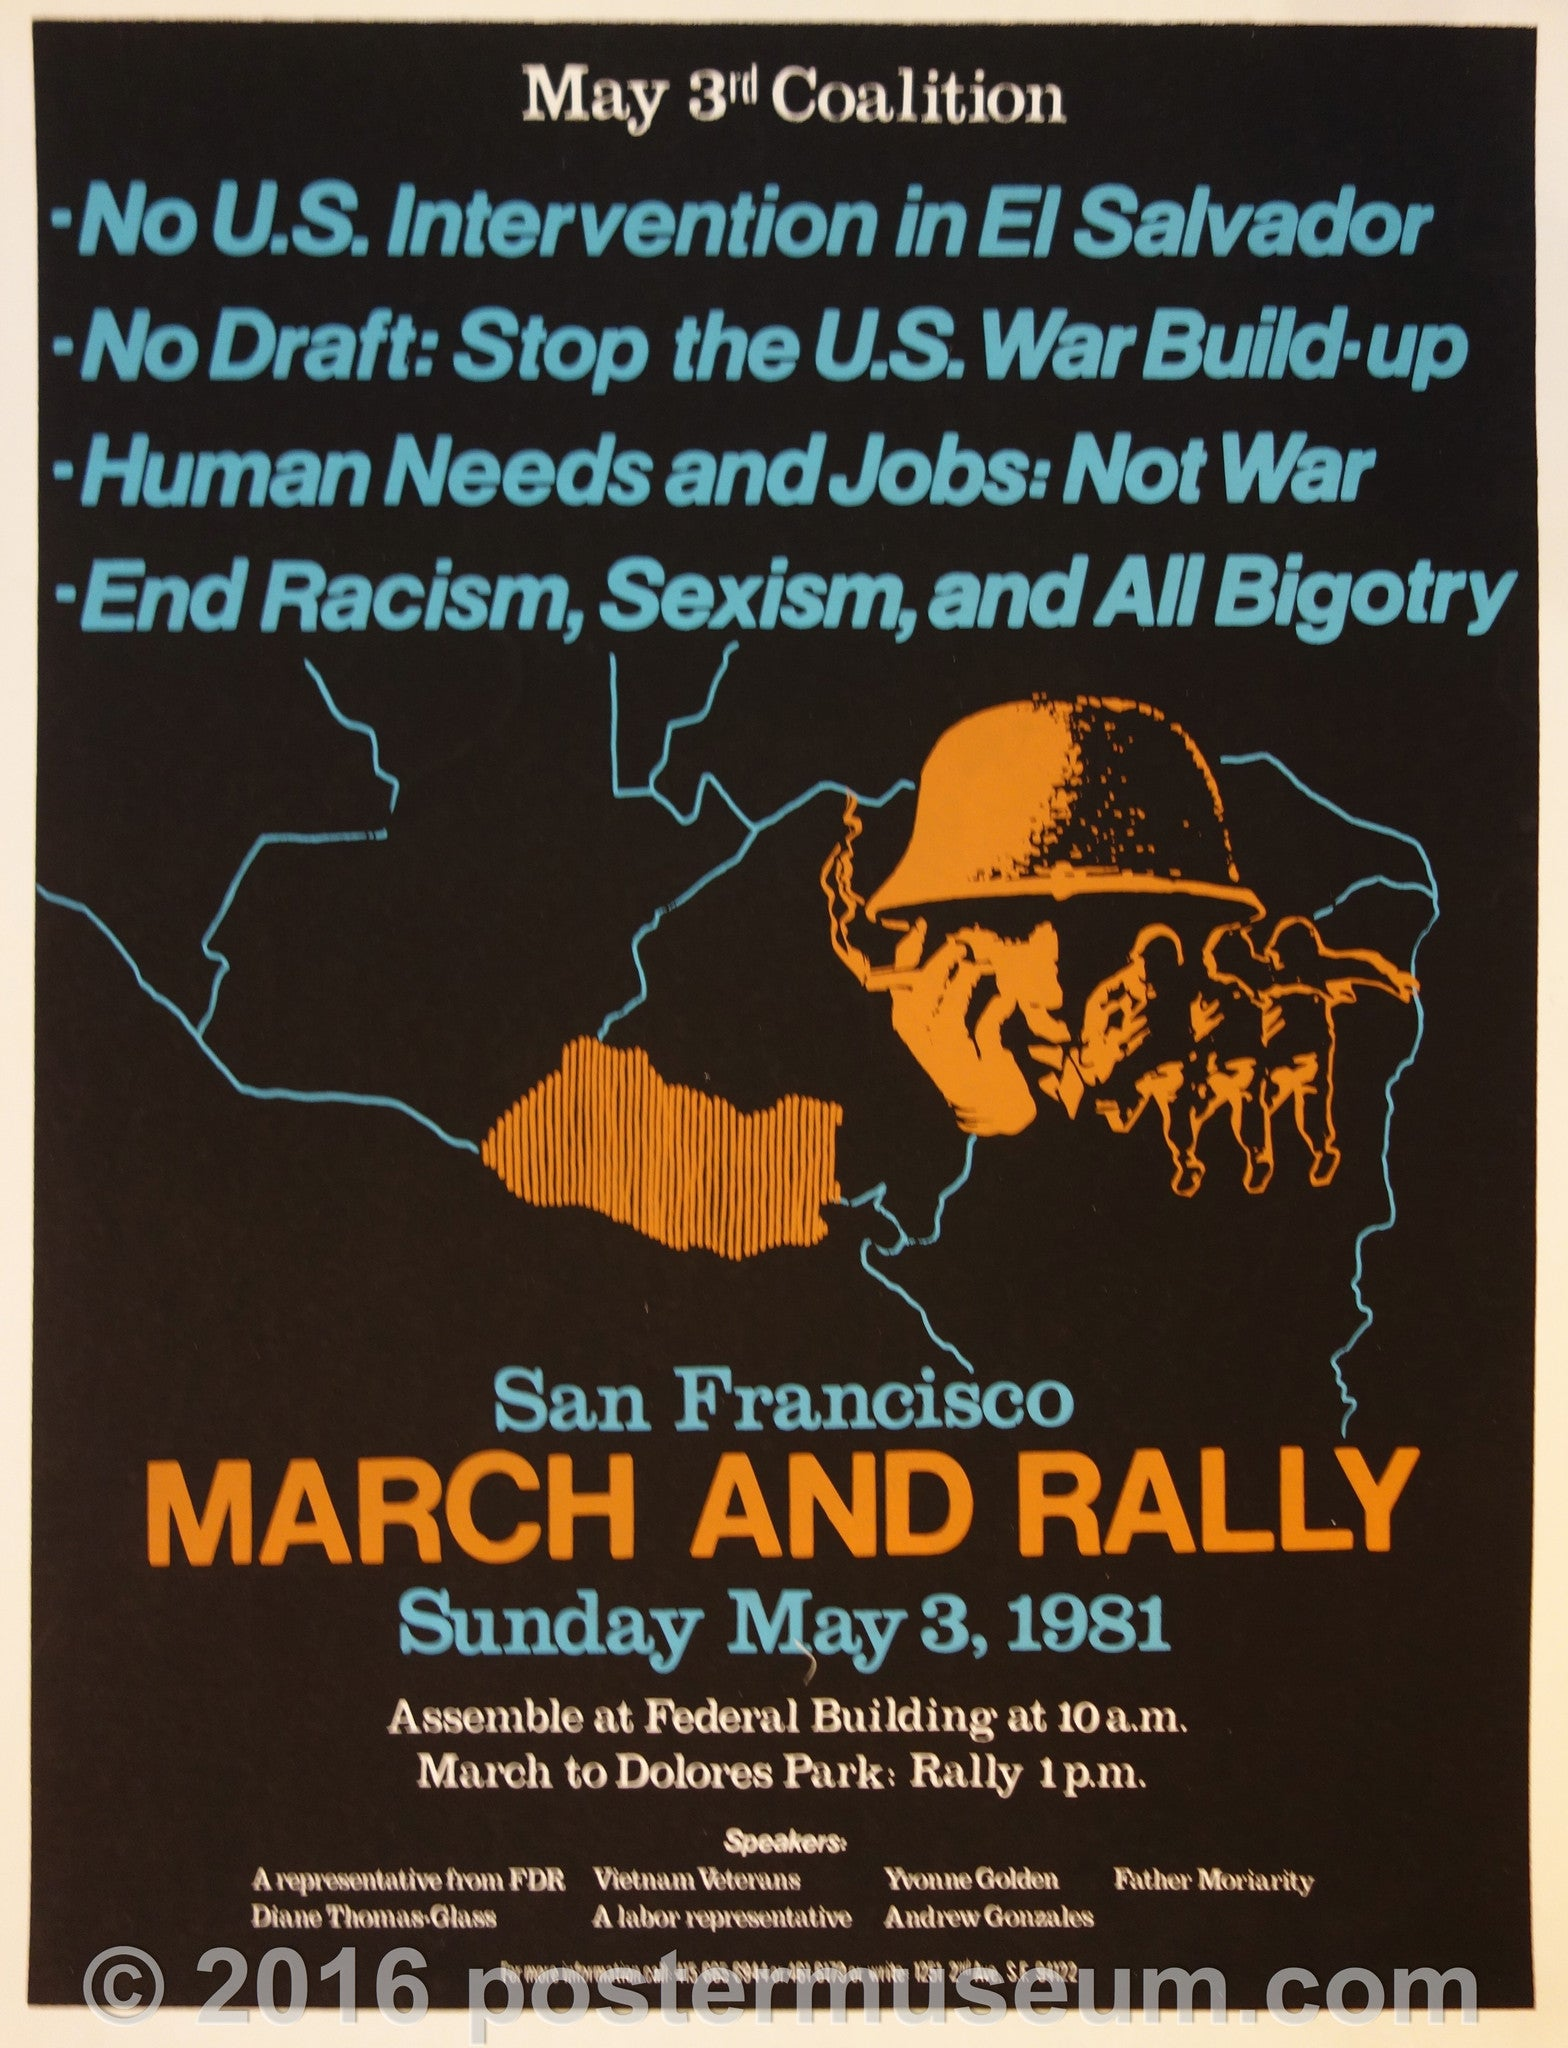 March and Rally